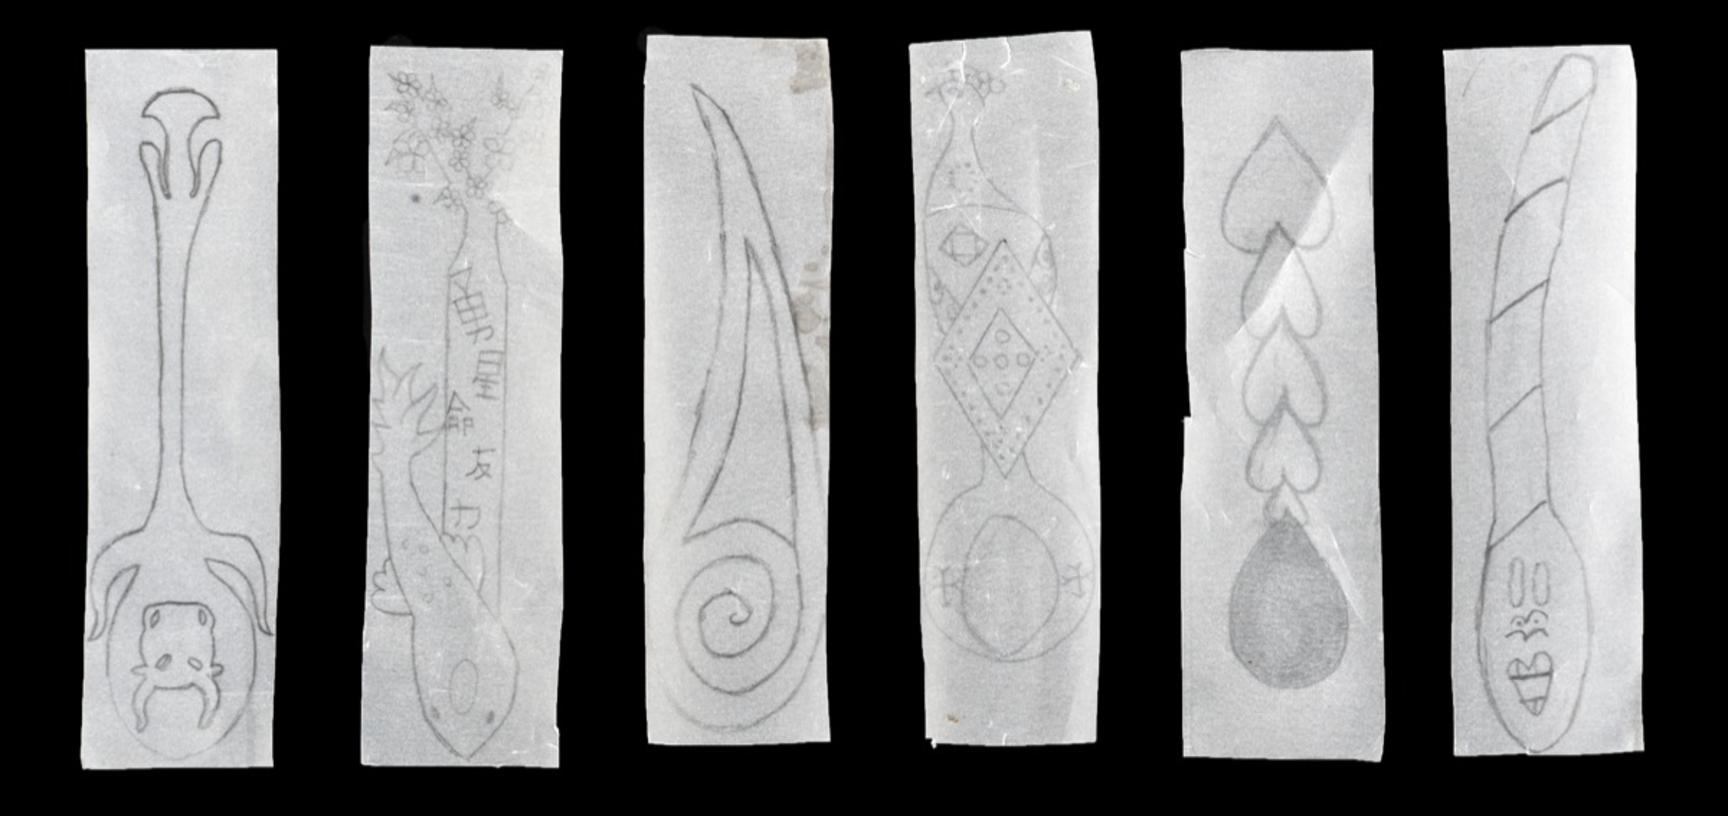 Drawings of different spoons